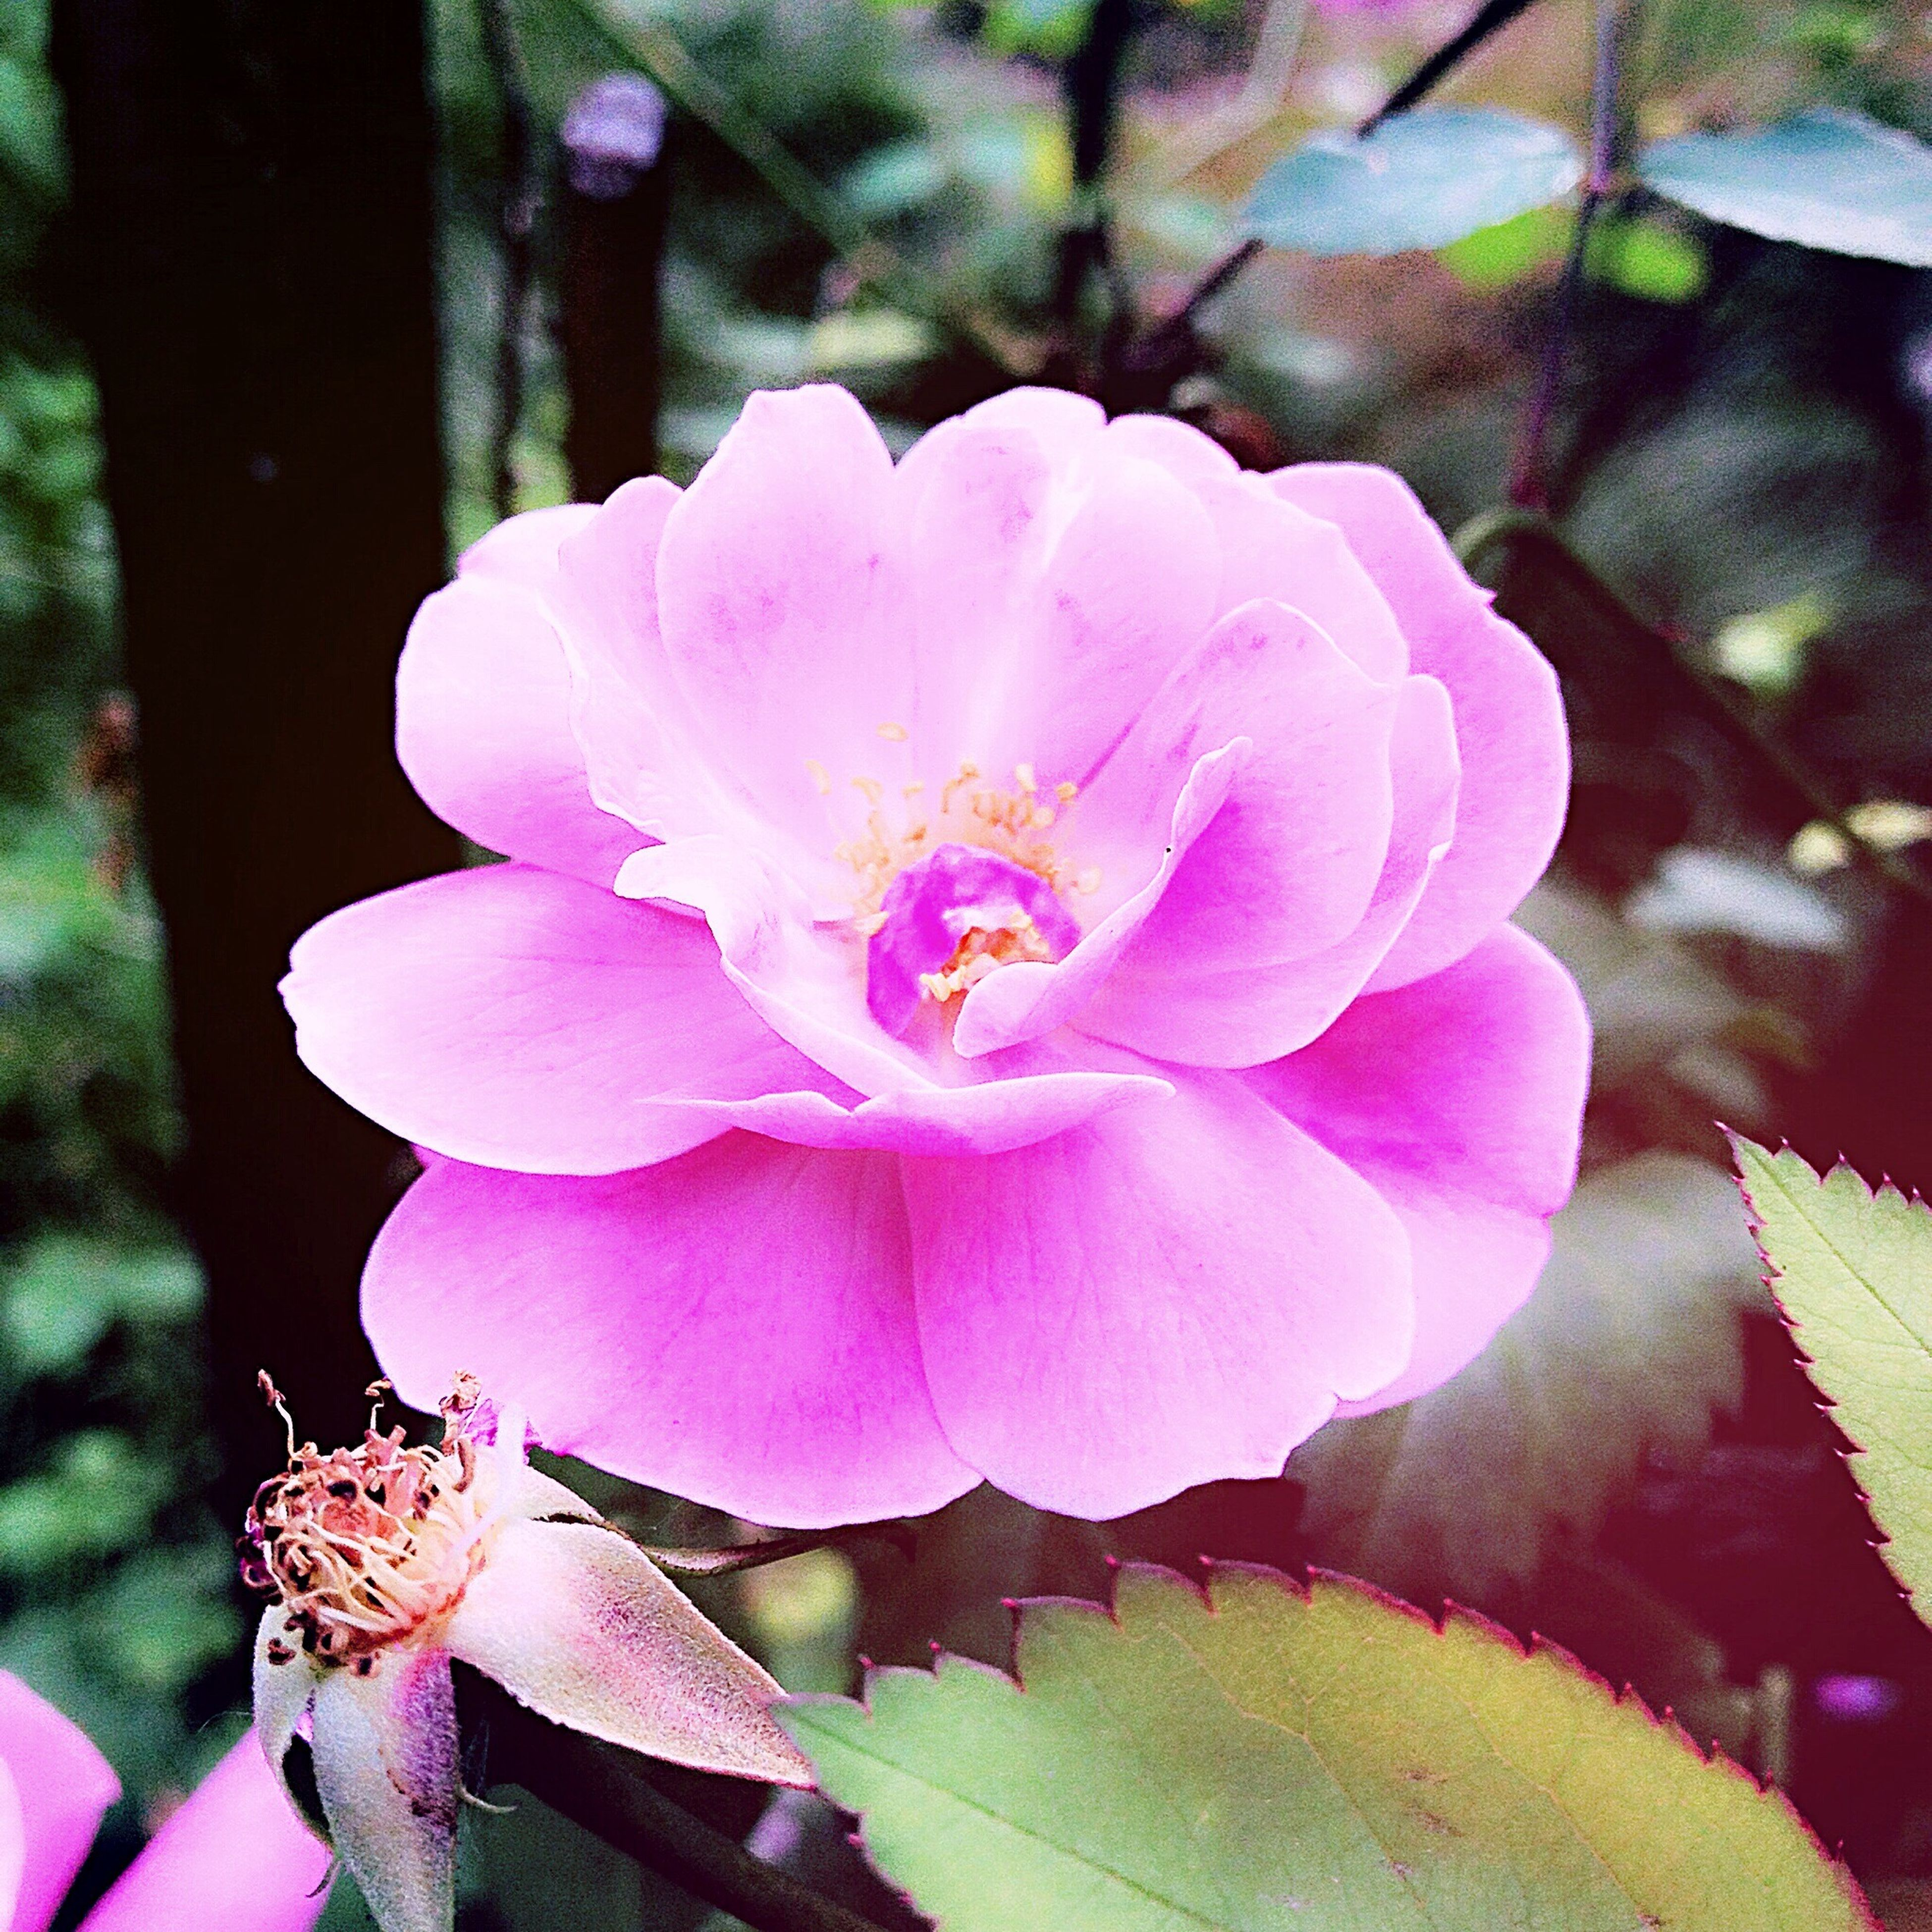 flower, petal, fragility, freshness, growth, flower head, pink color, close-up, beauty in nature, nature, blooming, focus on foreground, single flower, plant, in bloom, blossom, leaf, outdoors, day, park - man made space